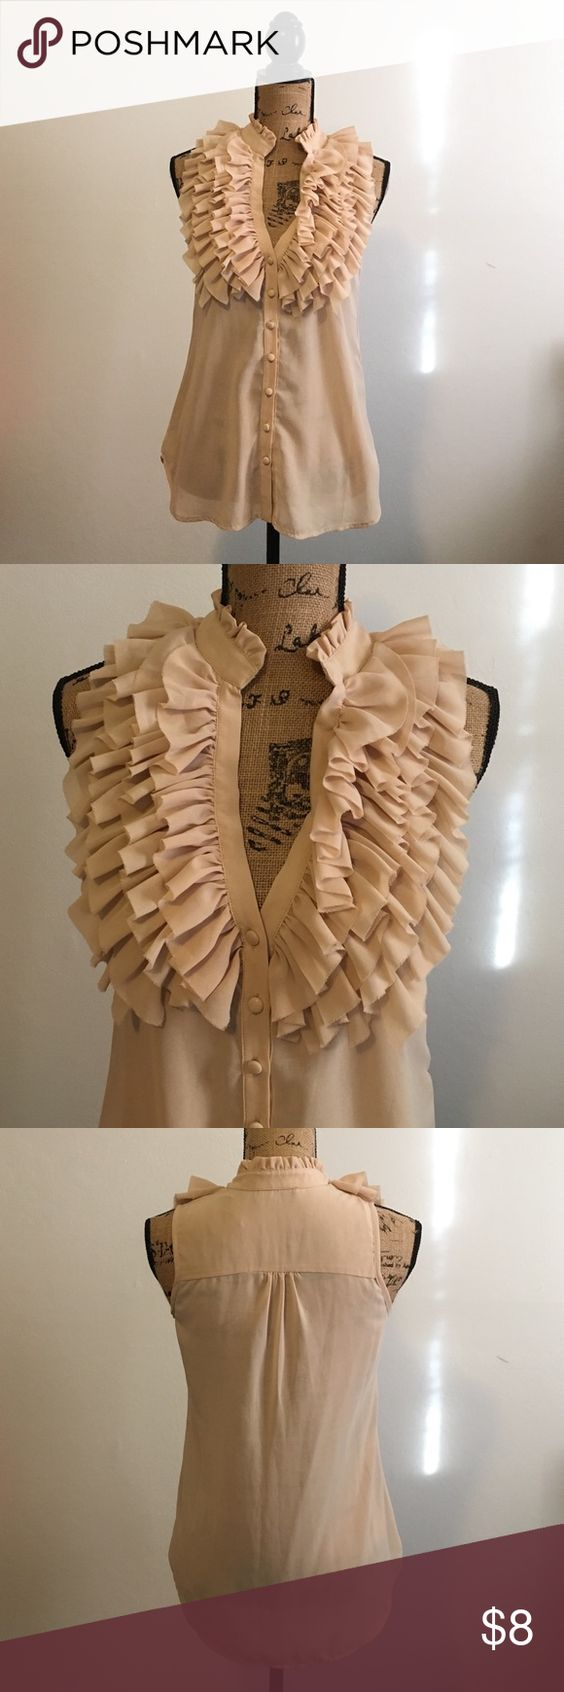 Beige ruffle blouse Really cute sleeveless ruffle button down top. Very good condition-hardly worn. A nice neutral beige color. Tops Blouses